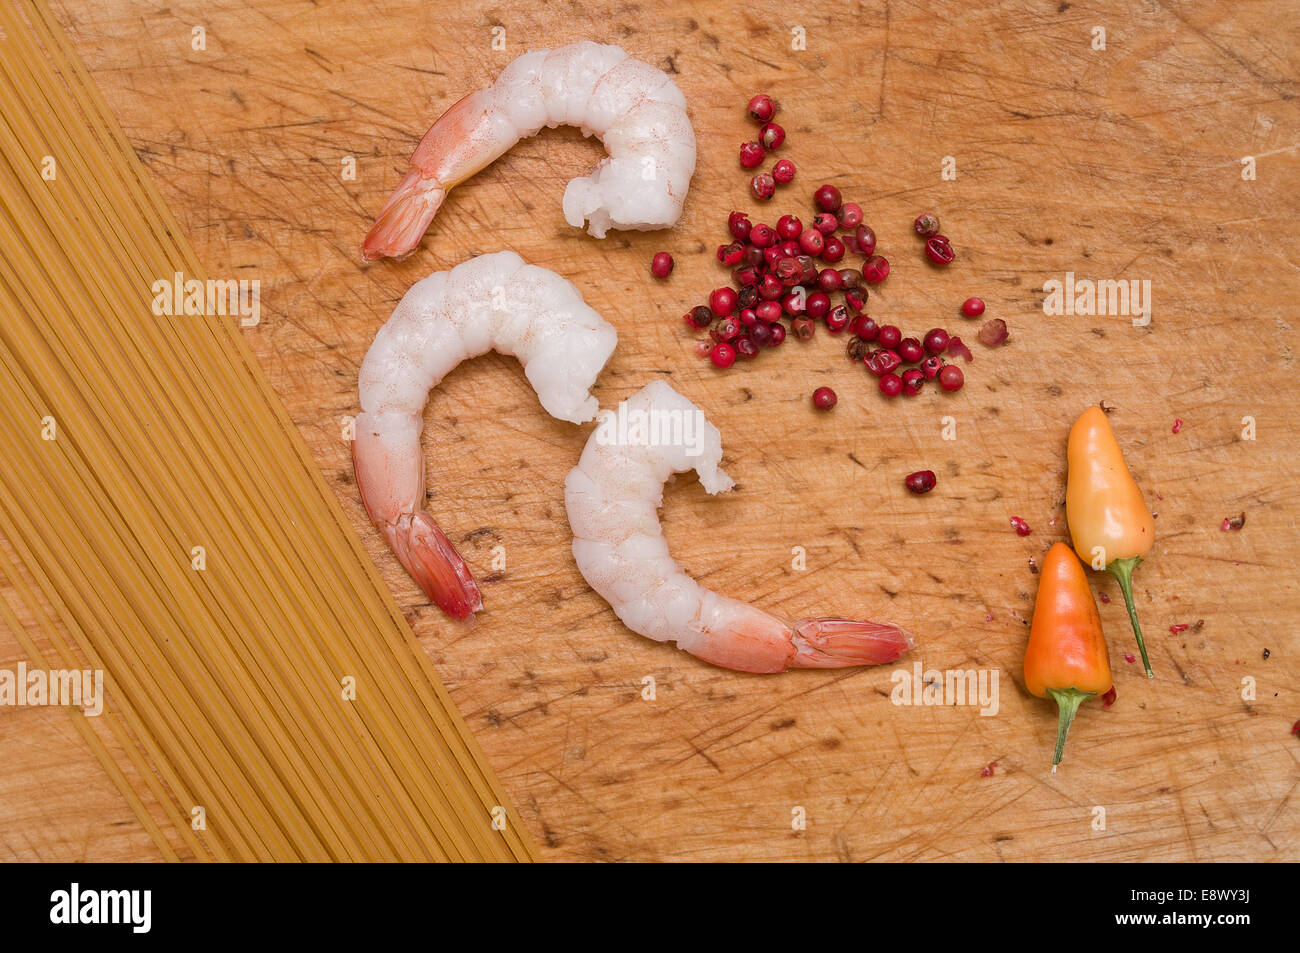 Ingredients for recipe of pasta with spicy shrimp and tomato sauce, on a wooden chopping board - Stock Image